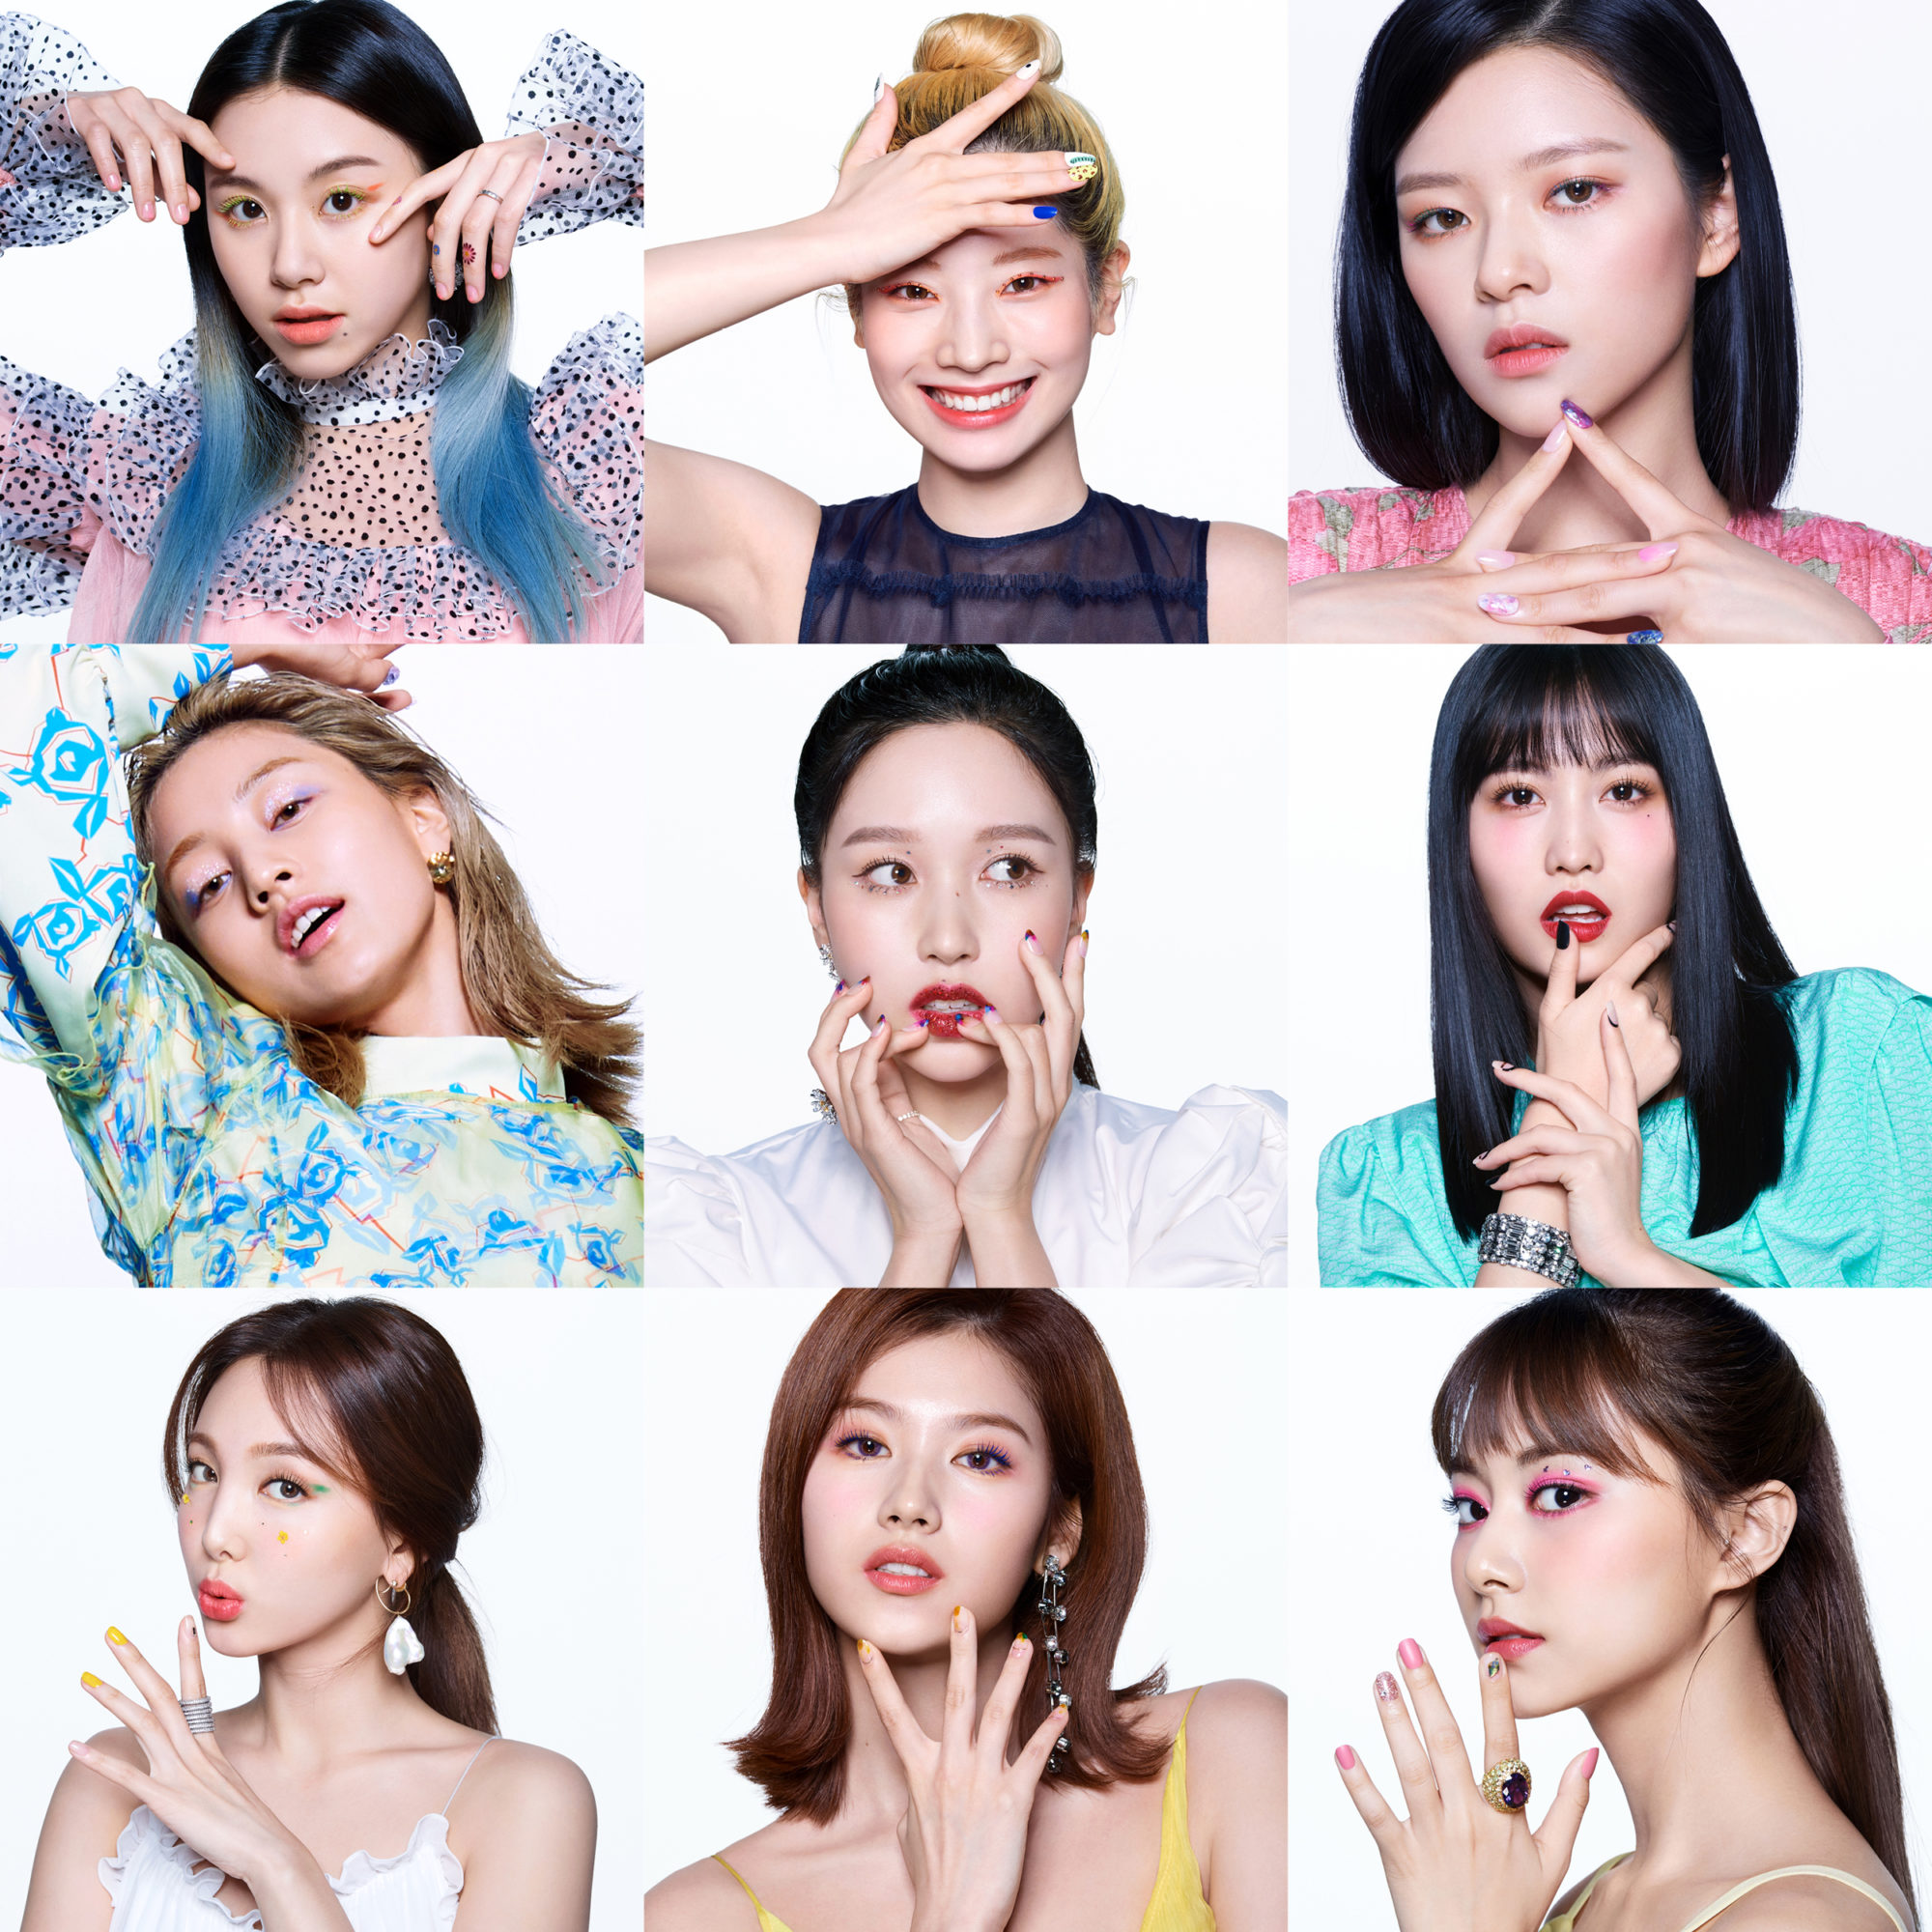 Twice Allure May 2020 Members